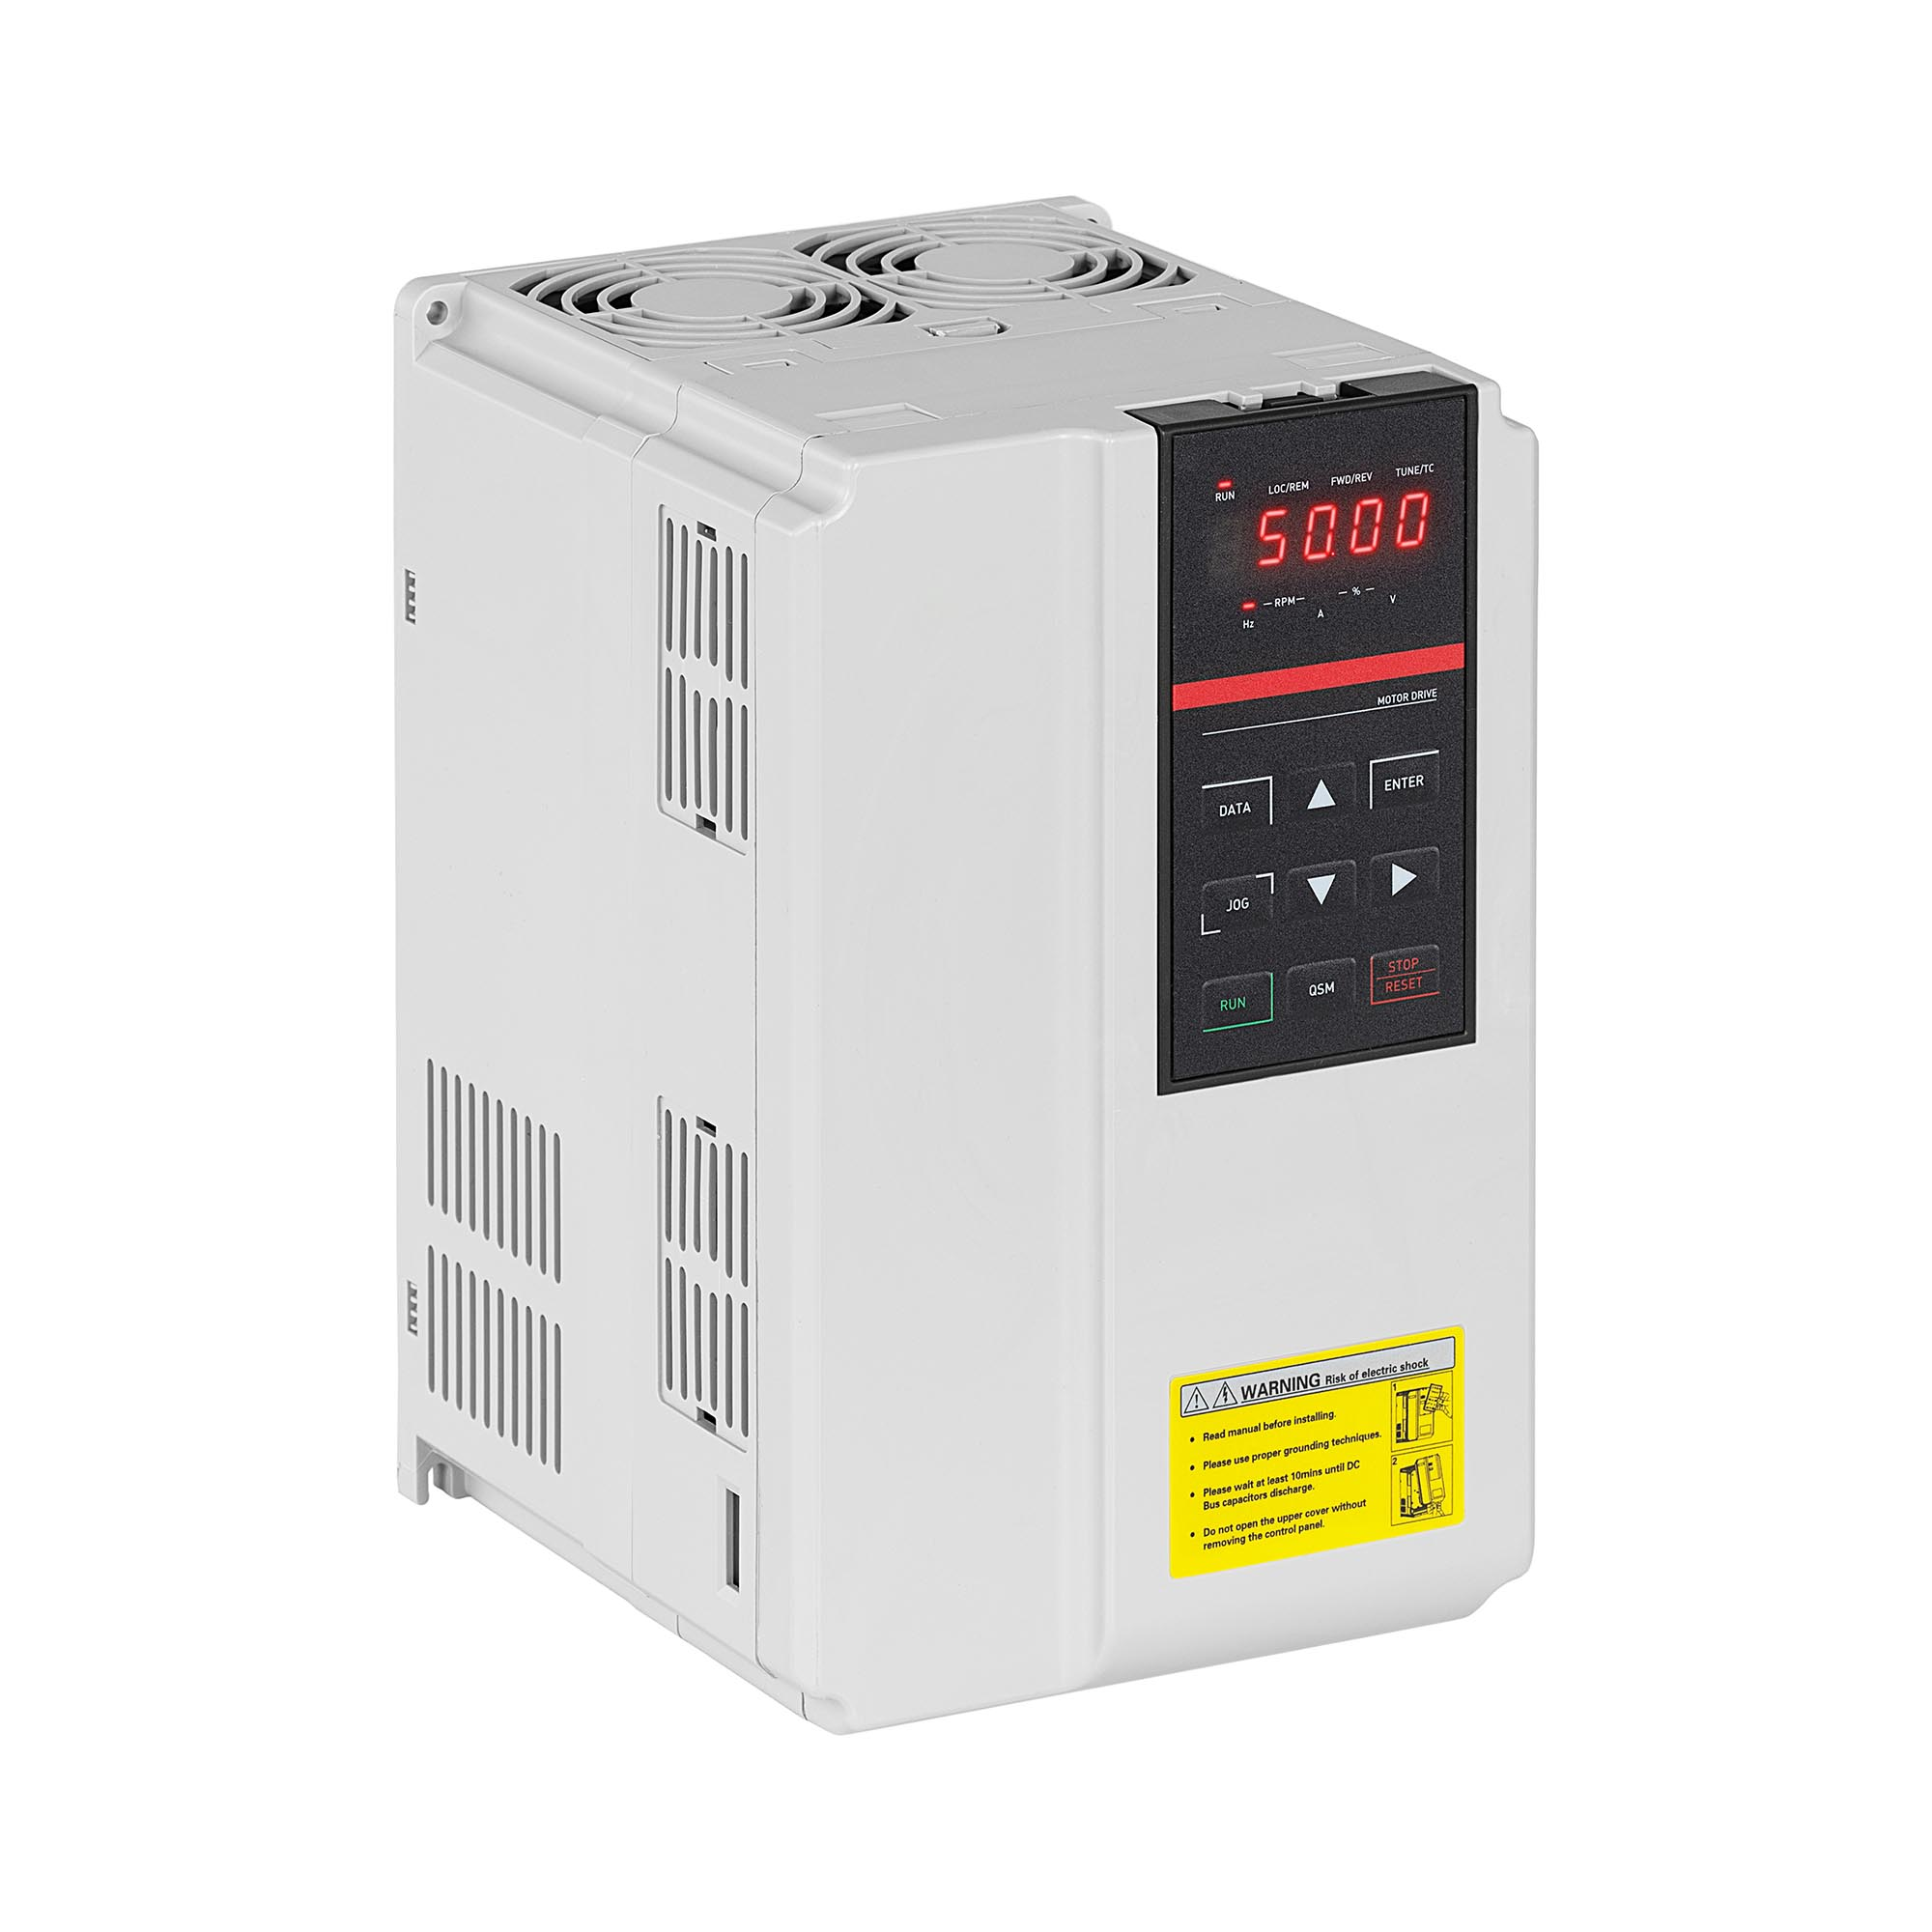 MSW Frequenzumrichter - 7,5 kW / 10 PS - 380 V - 50 - 60 Hz - LED MSW-FI-7500